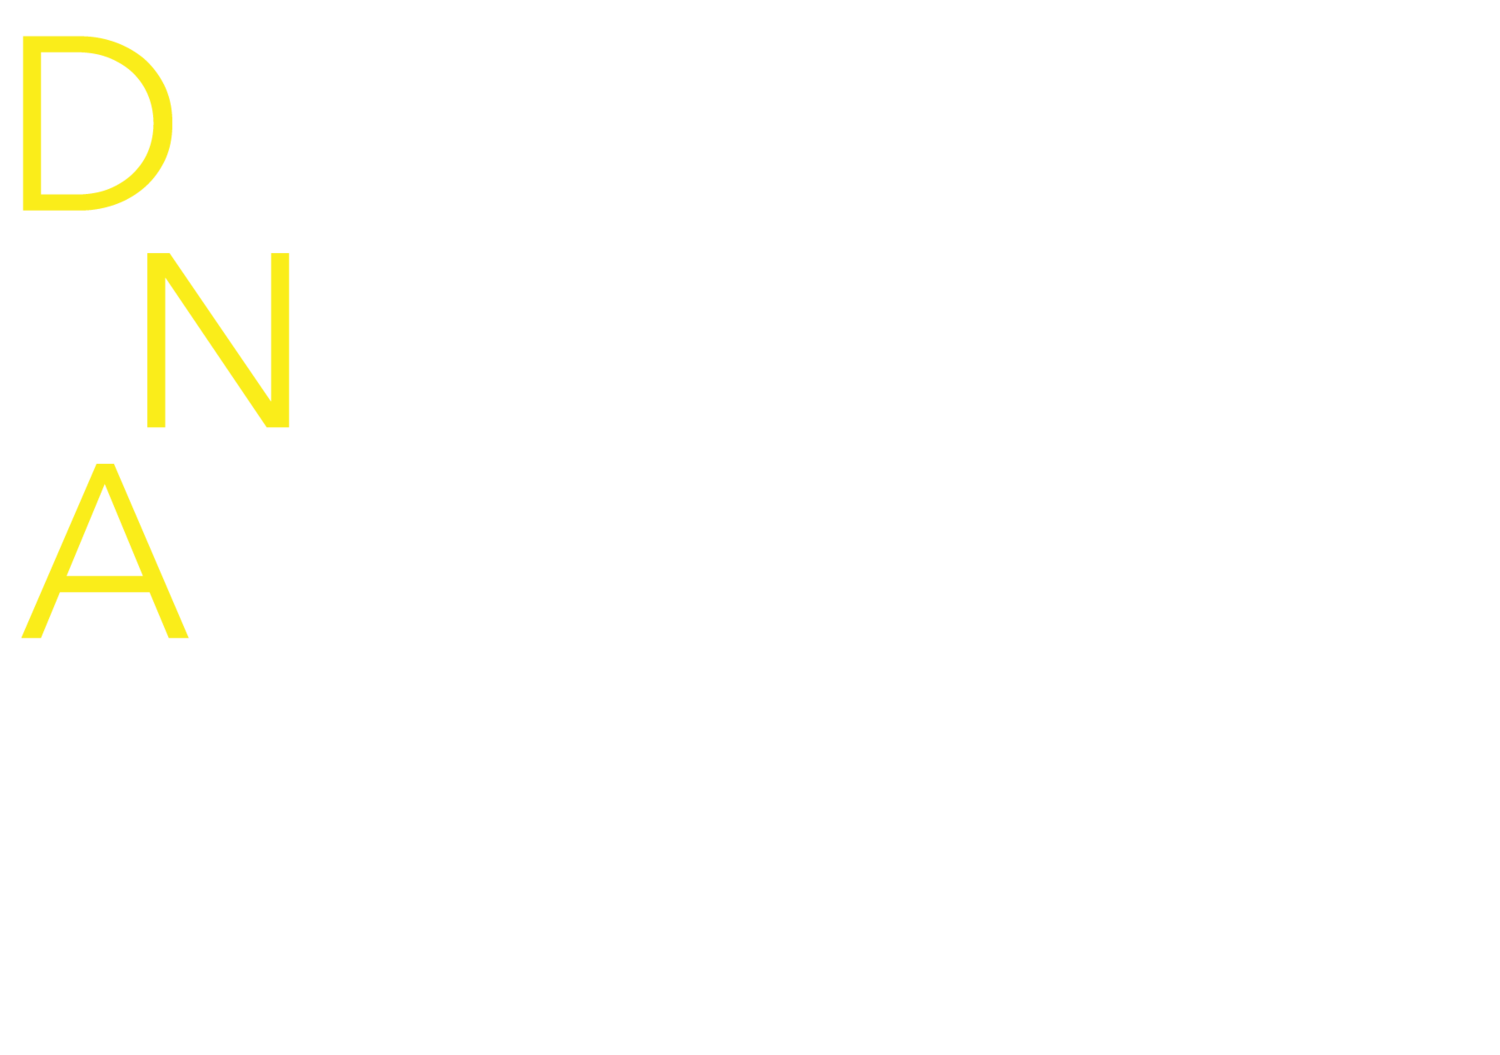 Design Nine Architects